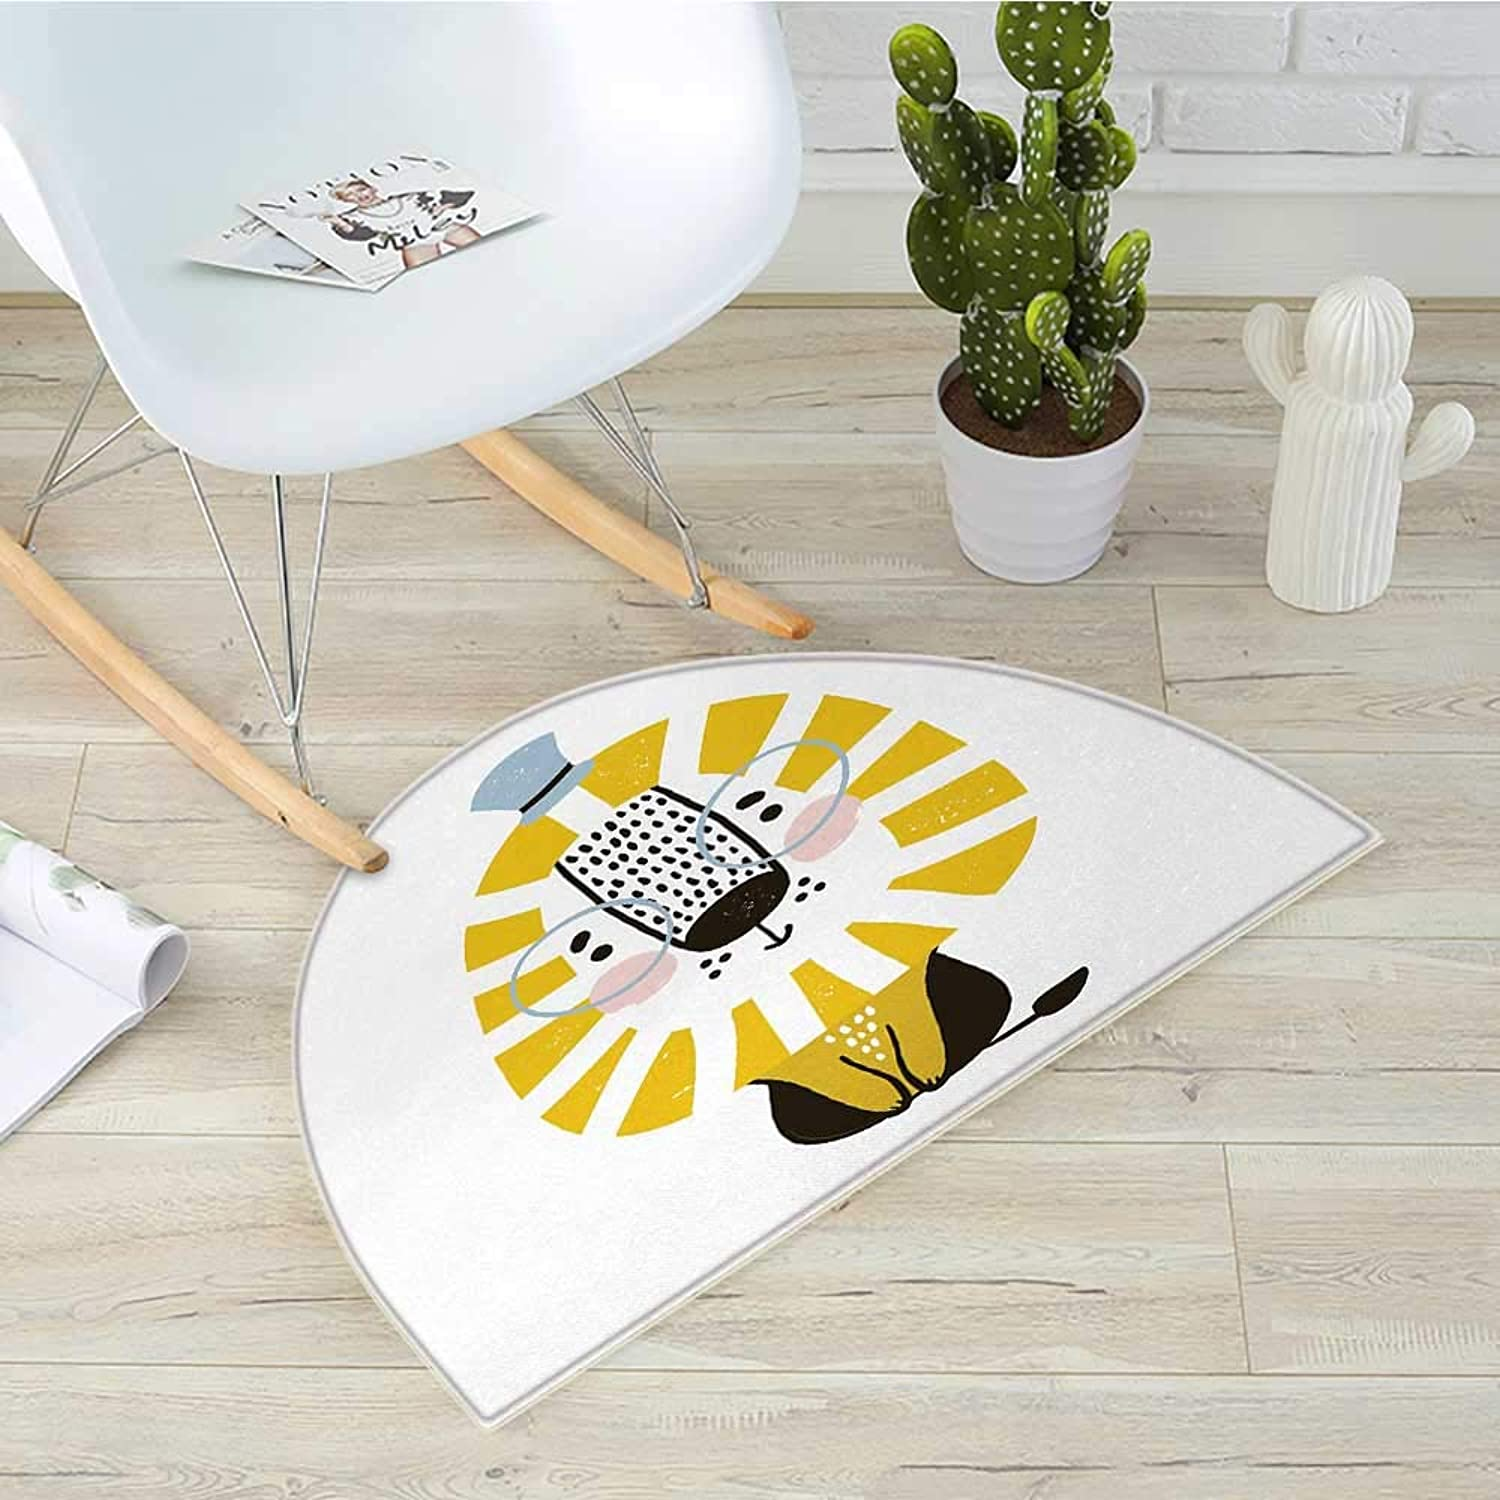 Lion Semicircular CushionDoodle Style Jungle Animal with Mane Glasses and Hat Funny Animal Cartoon Entry Door Mat H 39.3  xD 59  Pale bluee Yellow Black